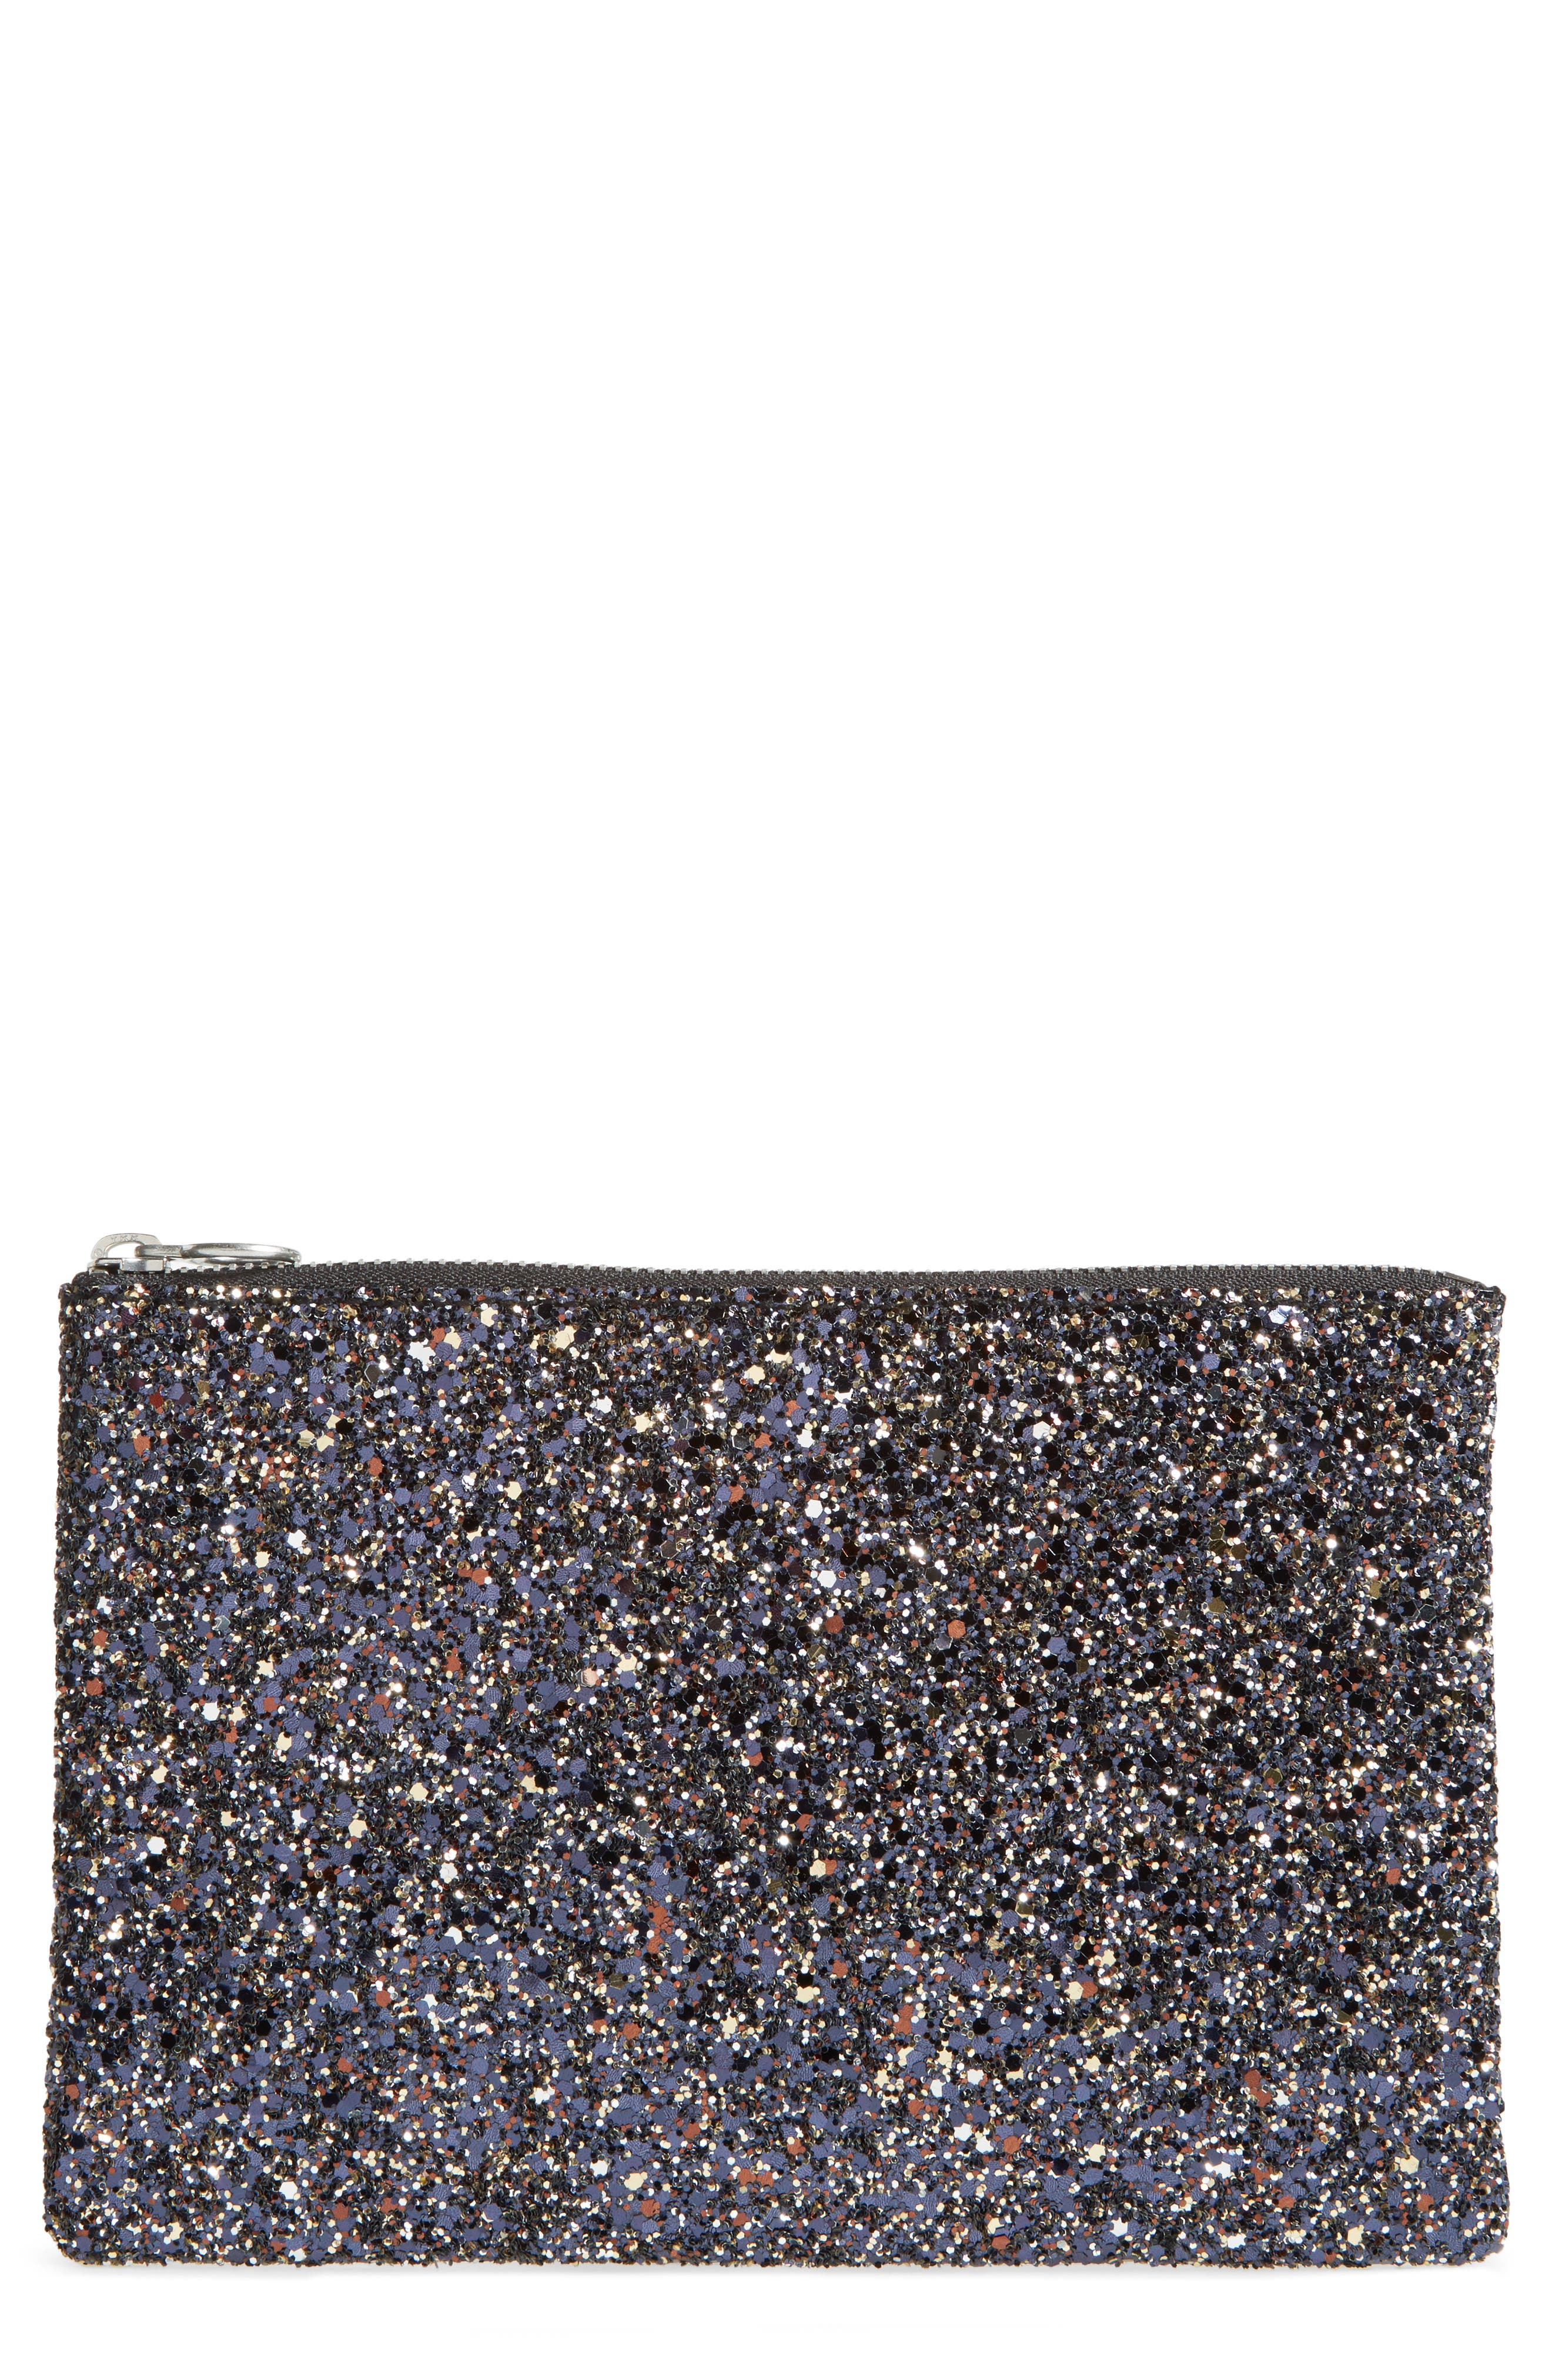 Madewell The Leather Pouch Clutch: Glitter Edition